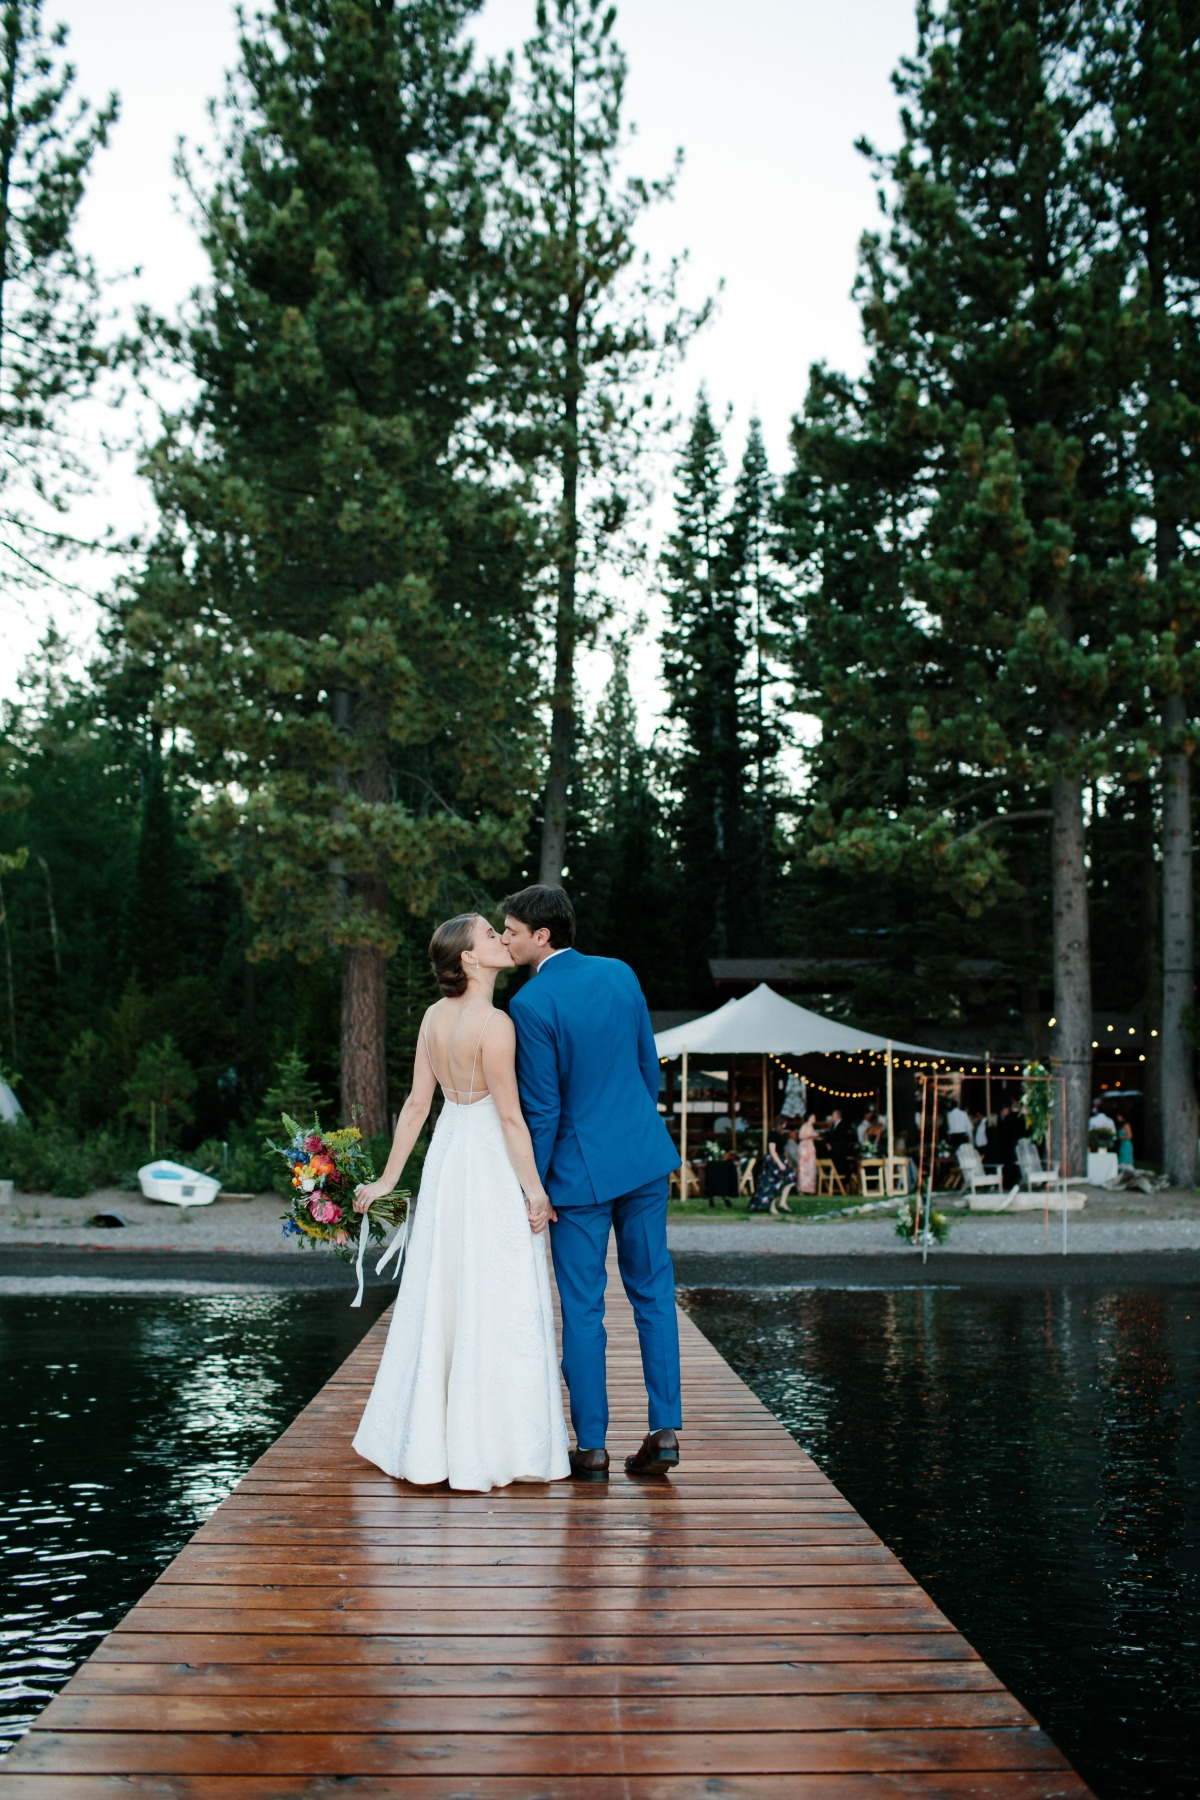 Whimsical and Lighthearted Wedding on the Shores of Tahoe